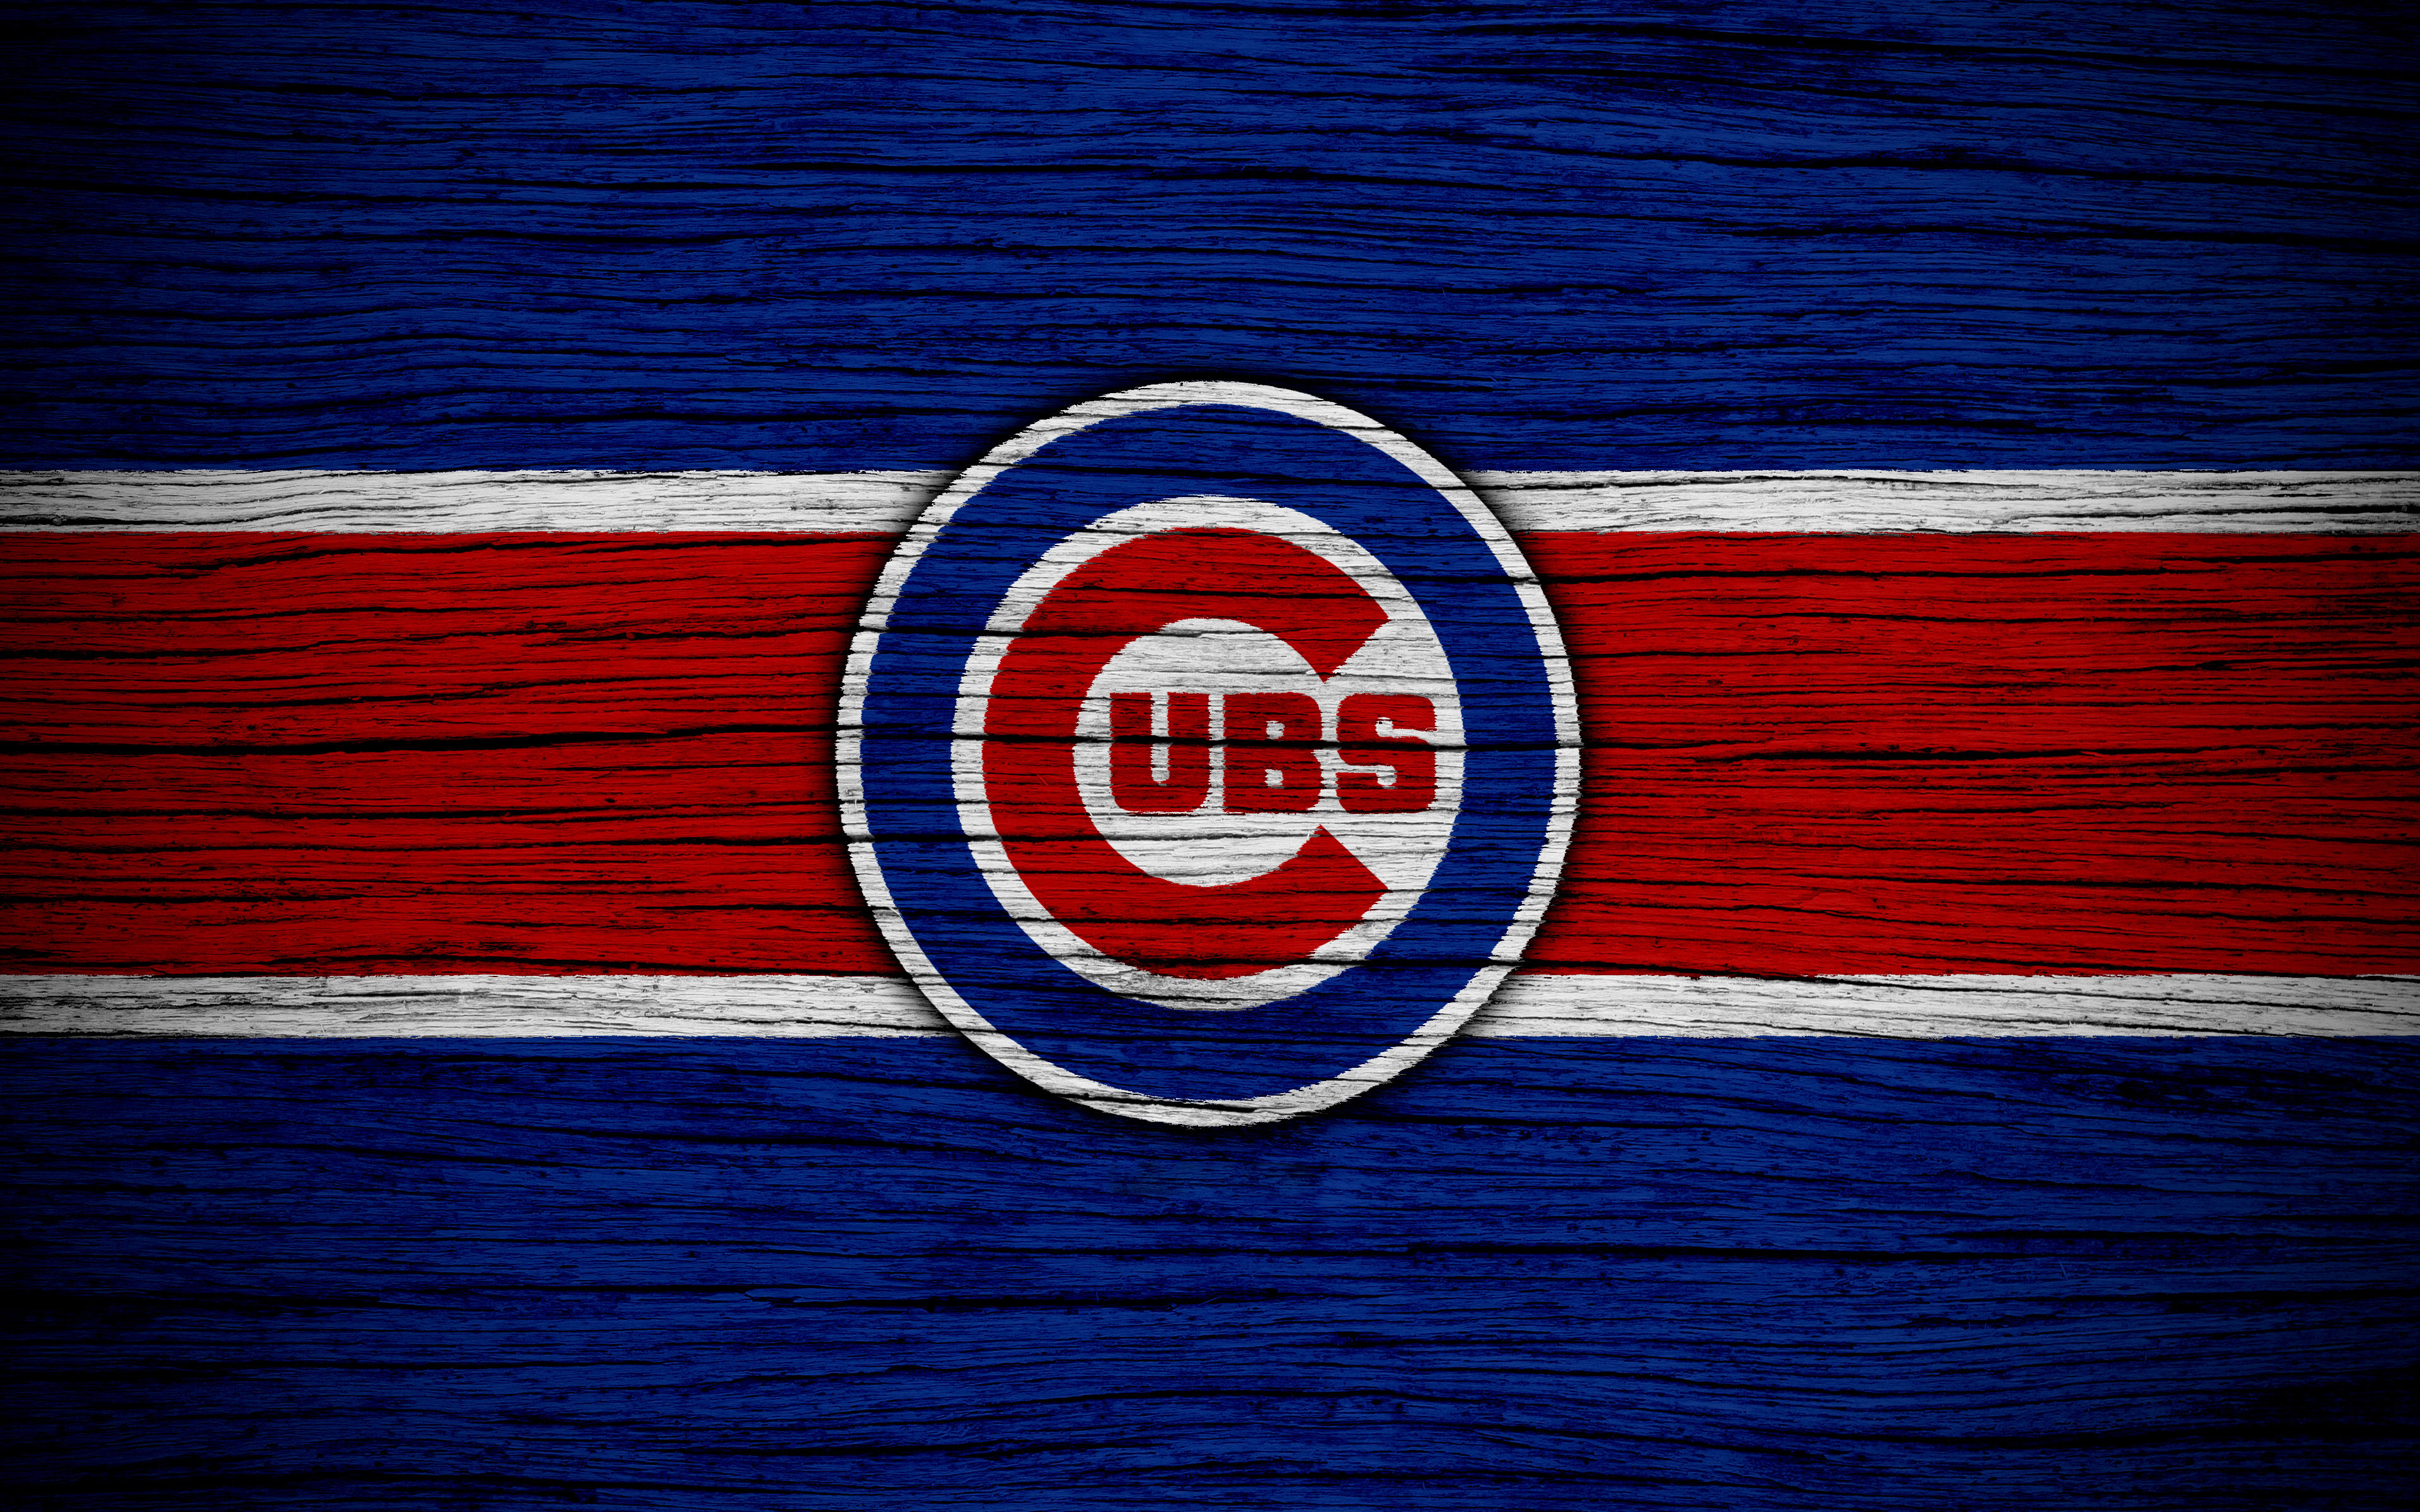 Chicago cubs 4k ultra hd wallpaper background image 3840x2400 id 983006 wallpaper abyss - Cubs background ...